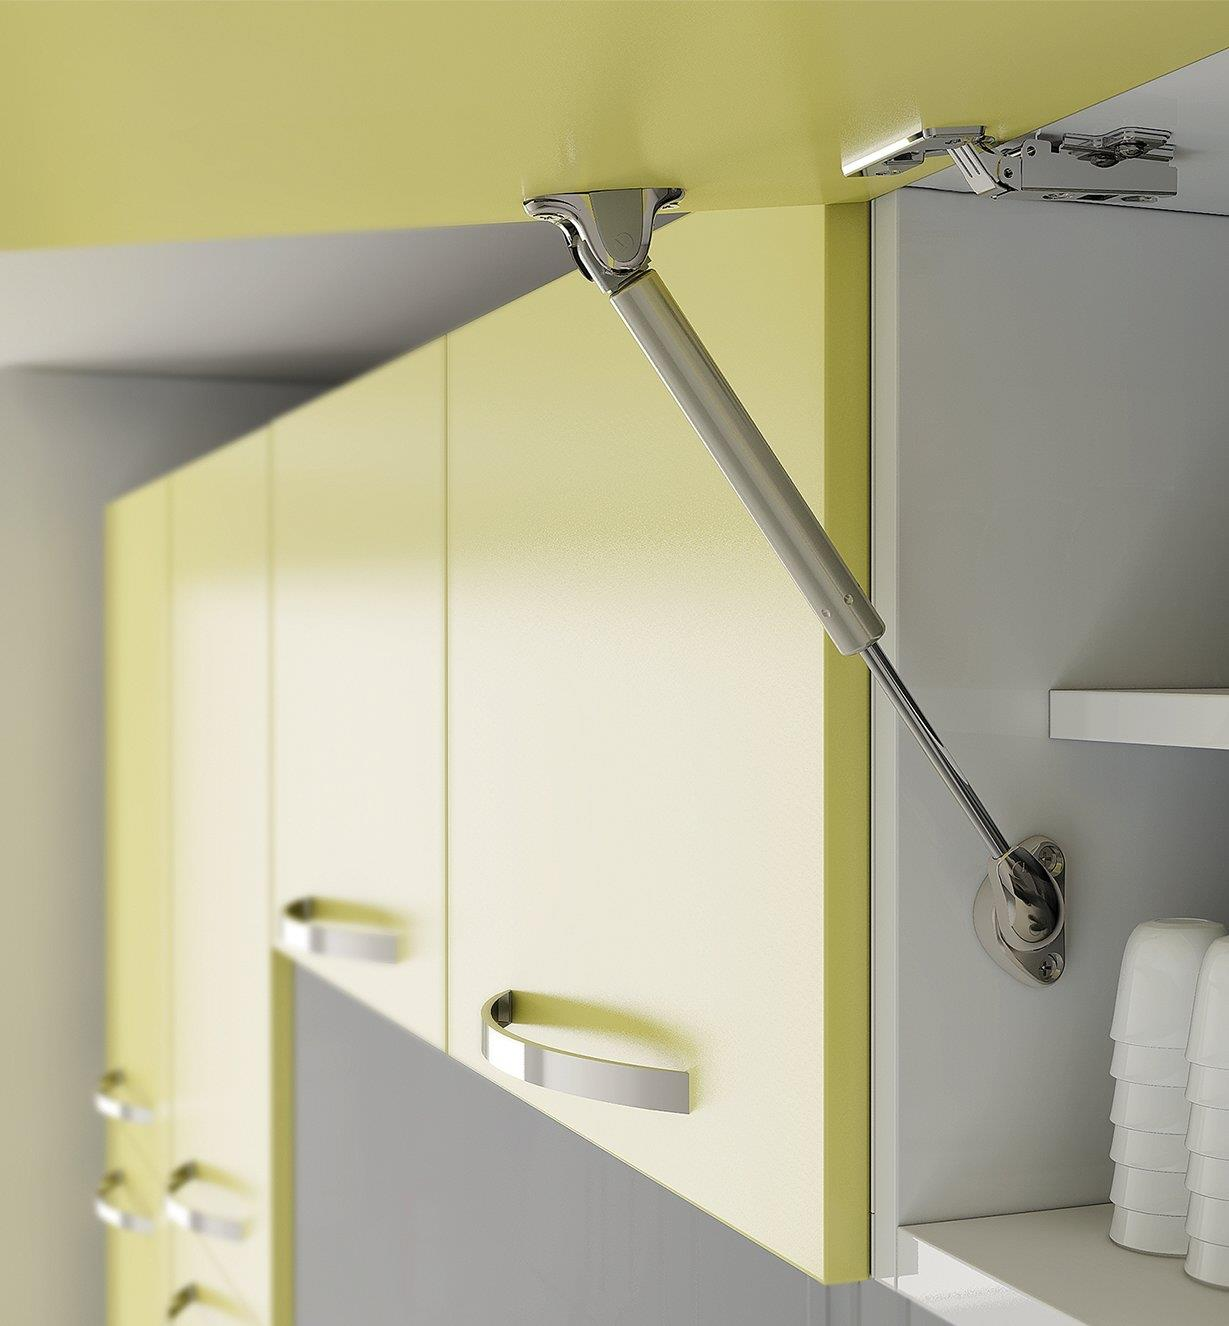 Soft-Open/Close Gas Spring Stay installed in a cabinet, holding an upward-swinging door open